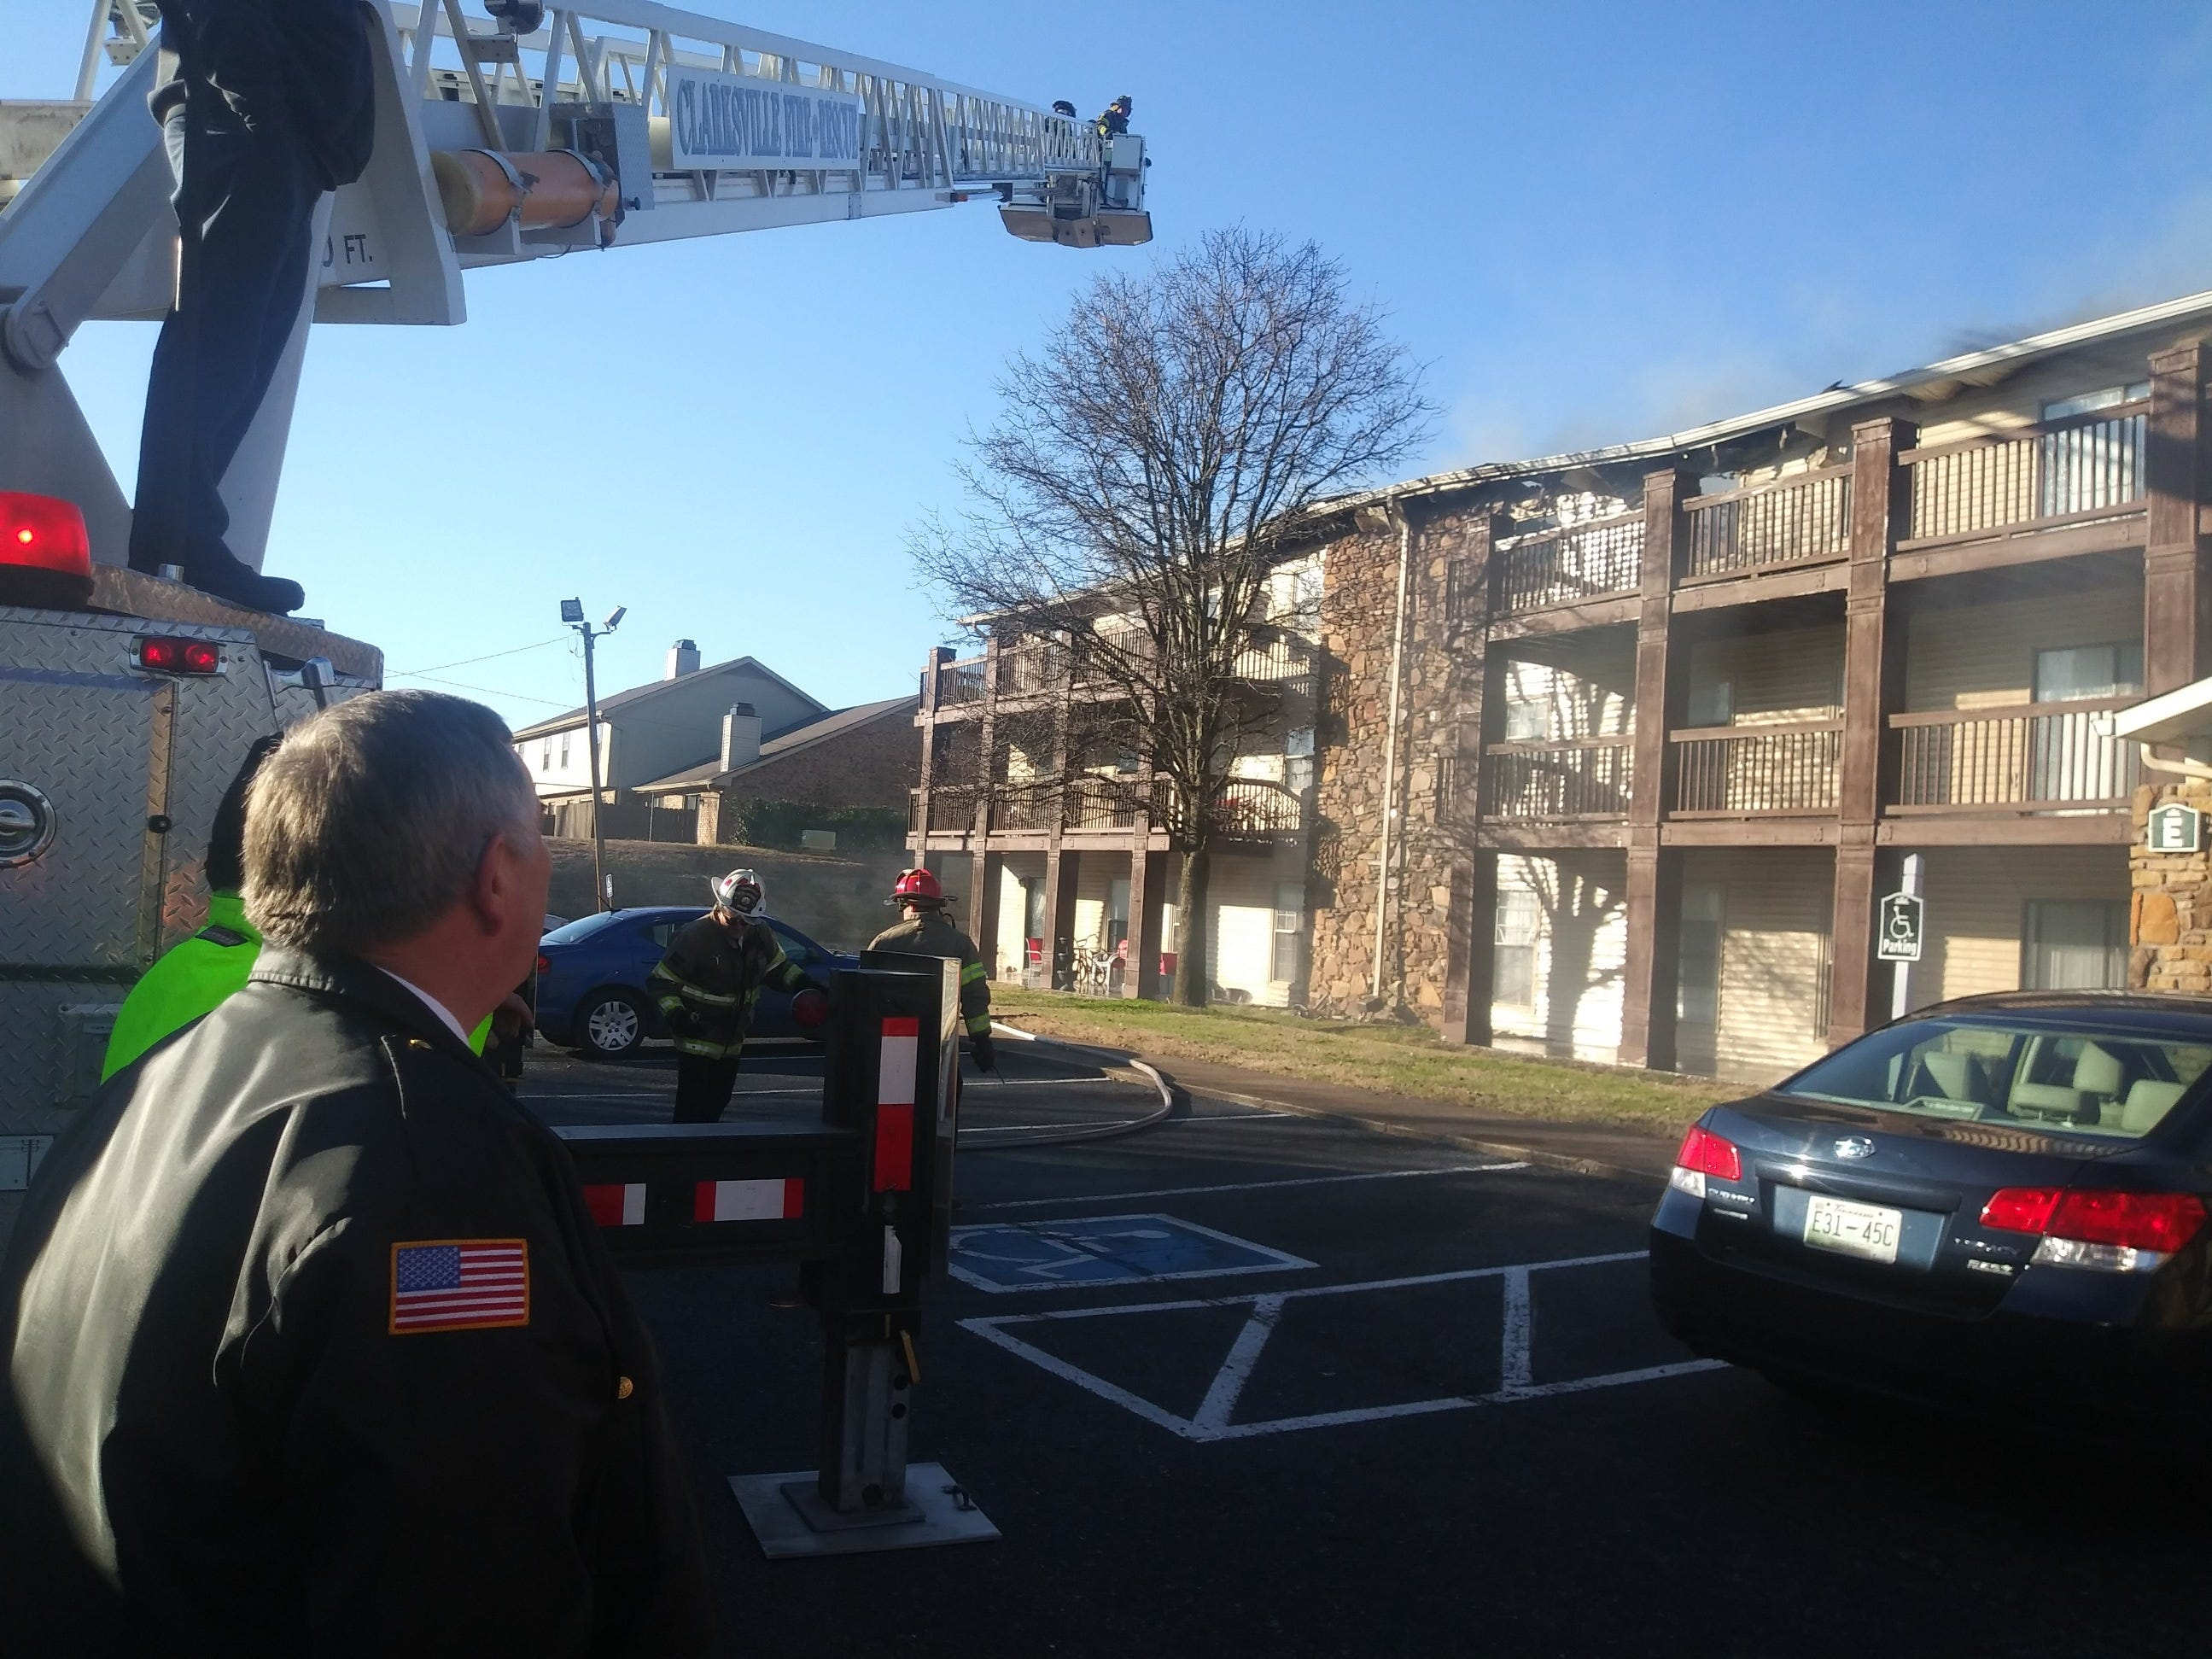 Fire crews respond to a blaze that broke out Tuesday, Jan. 29, 2019, at Ashford Place Apartments on Memorial Drive.